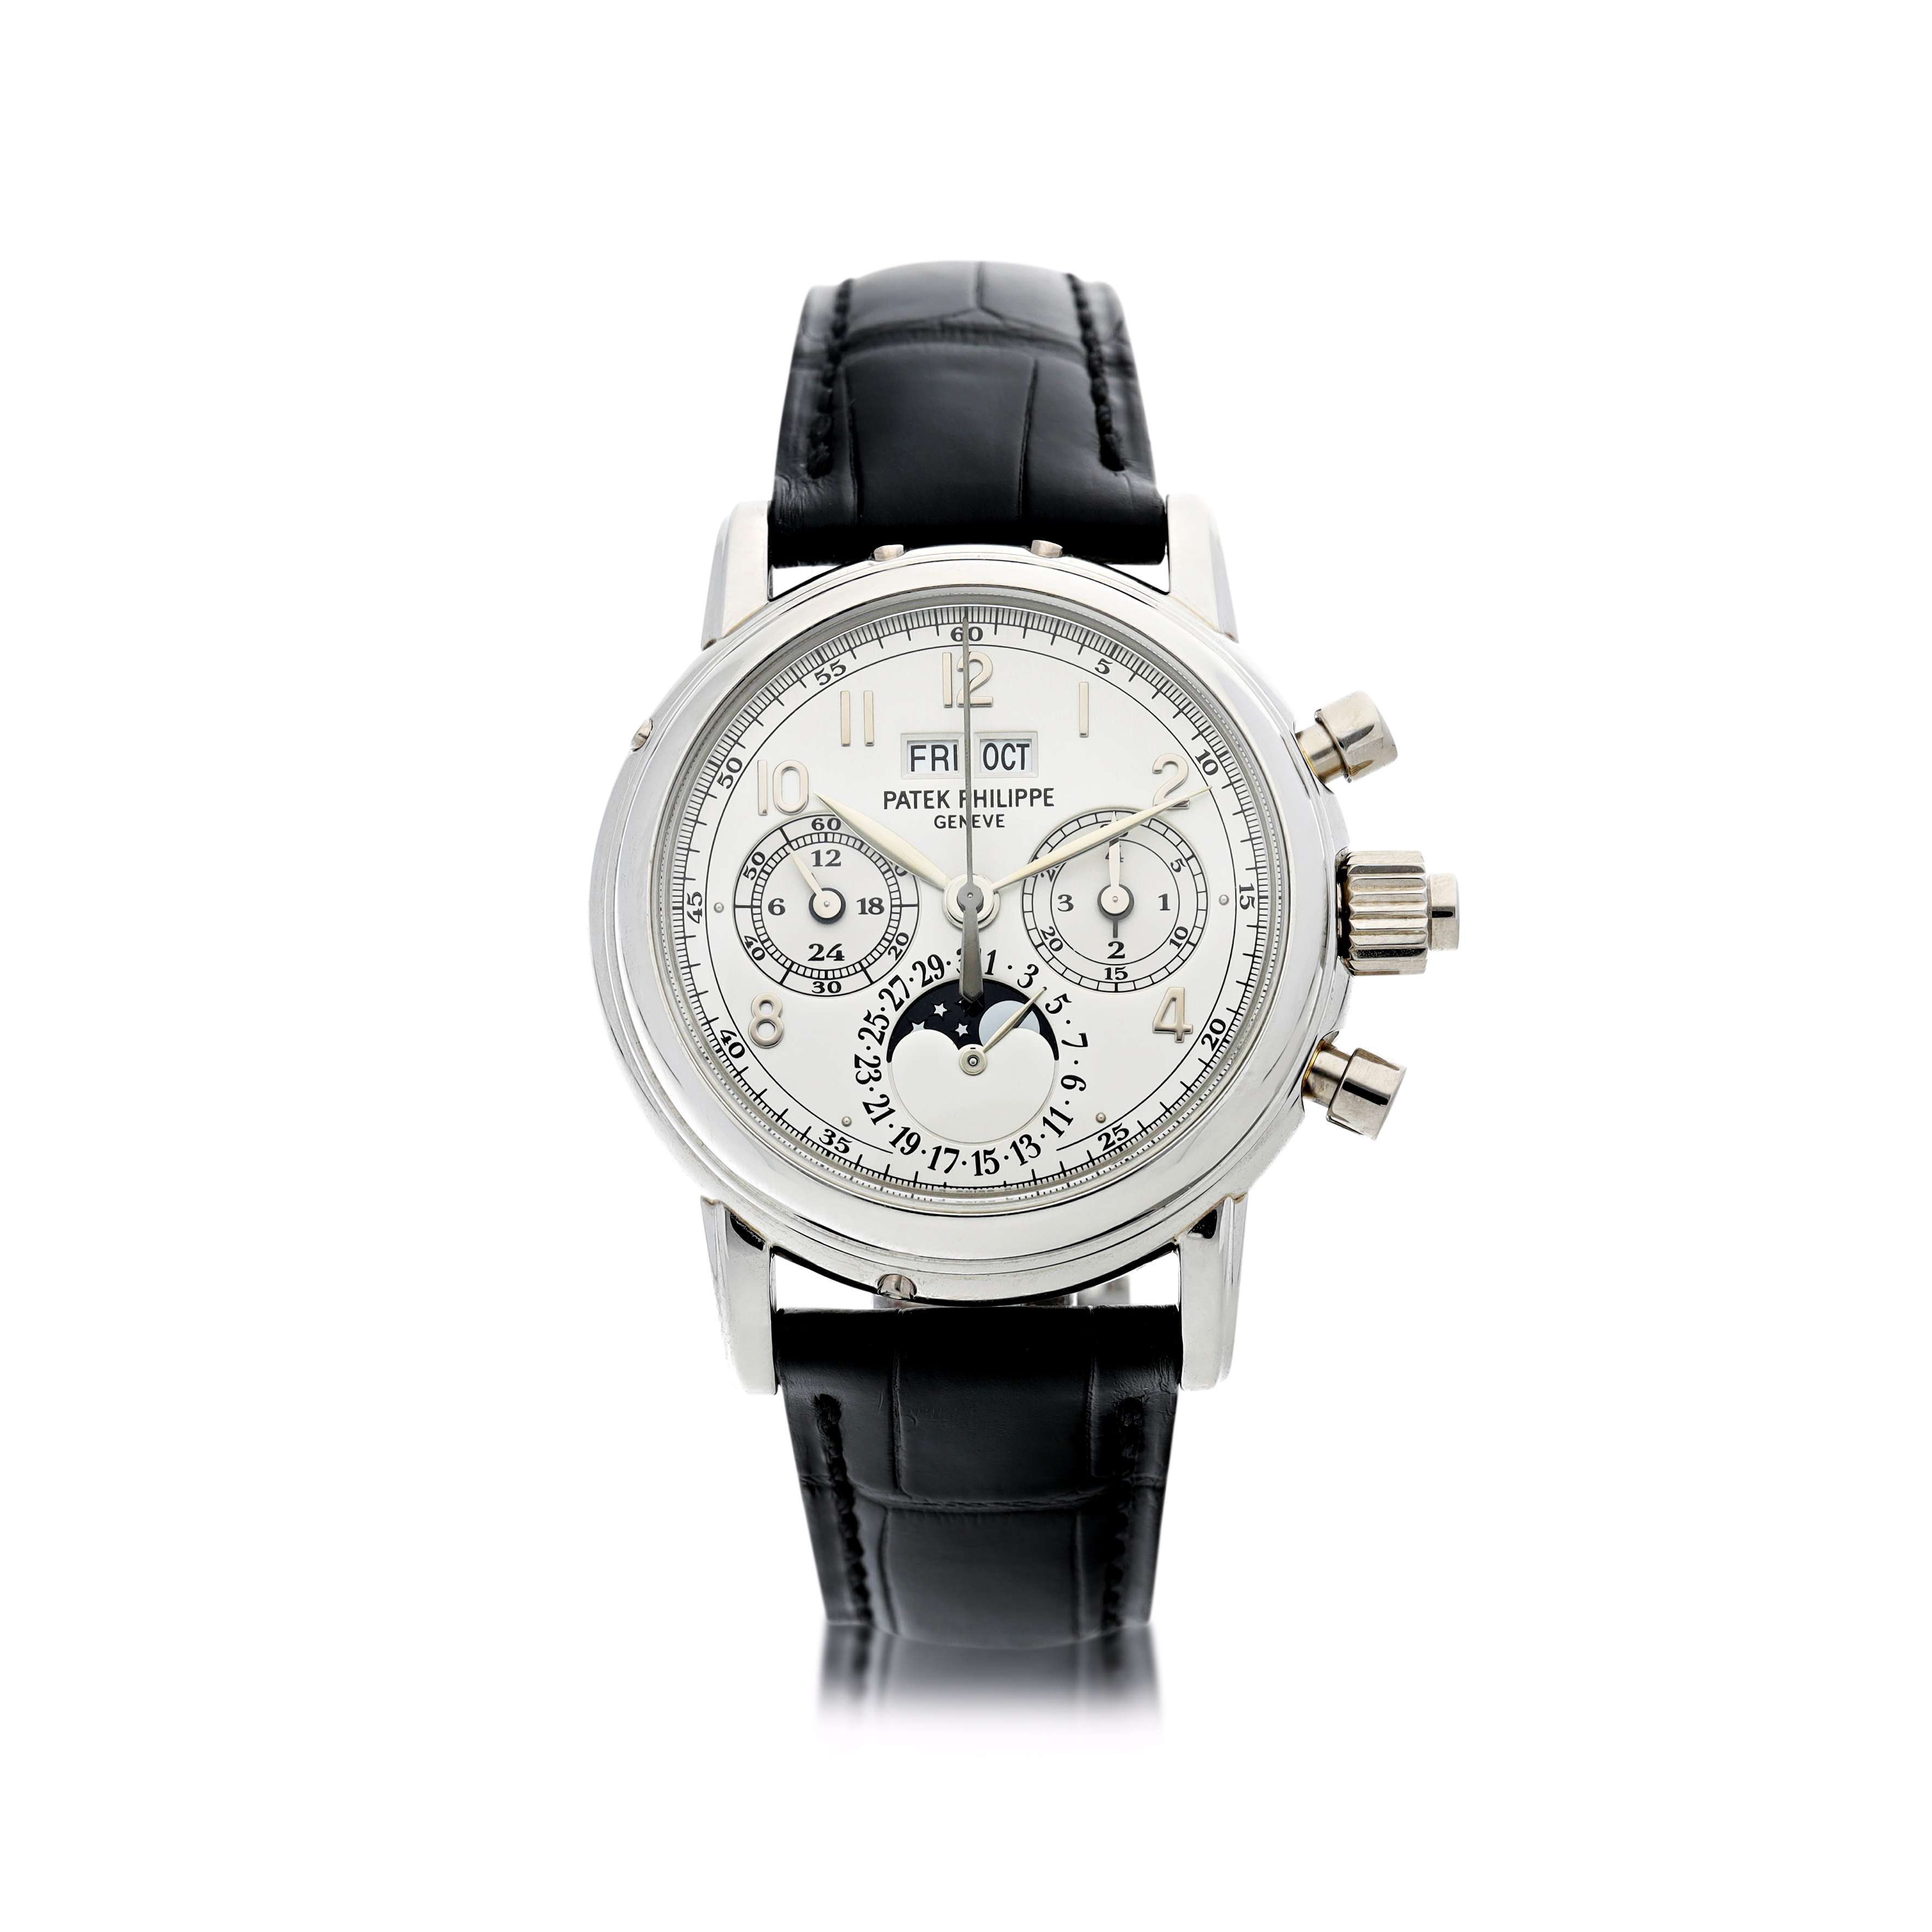 REFERENCE 5004P-001 A PLATINUM PERPETUAL CALENDAR SPLIT SECONDS CHRONOGRAPH WRISTWATCH WITH MOON PHASES, 24 HOURS AND LEAP YEAR INDICATION, CIRCA 1998